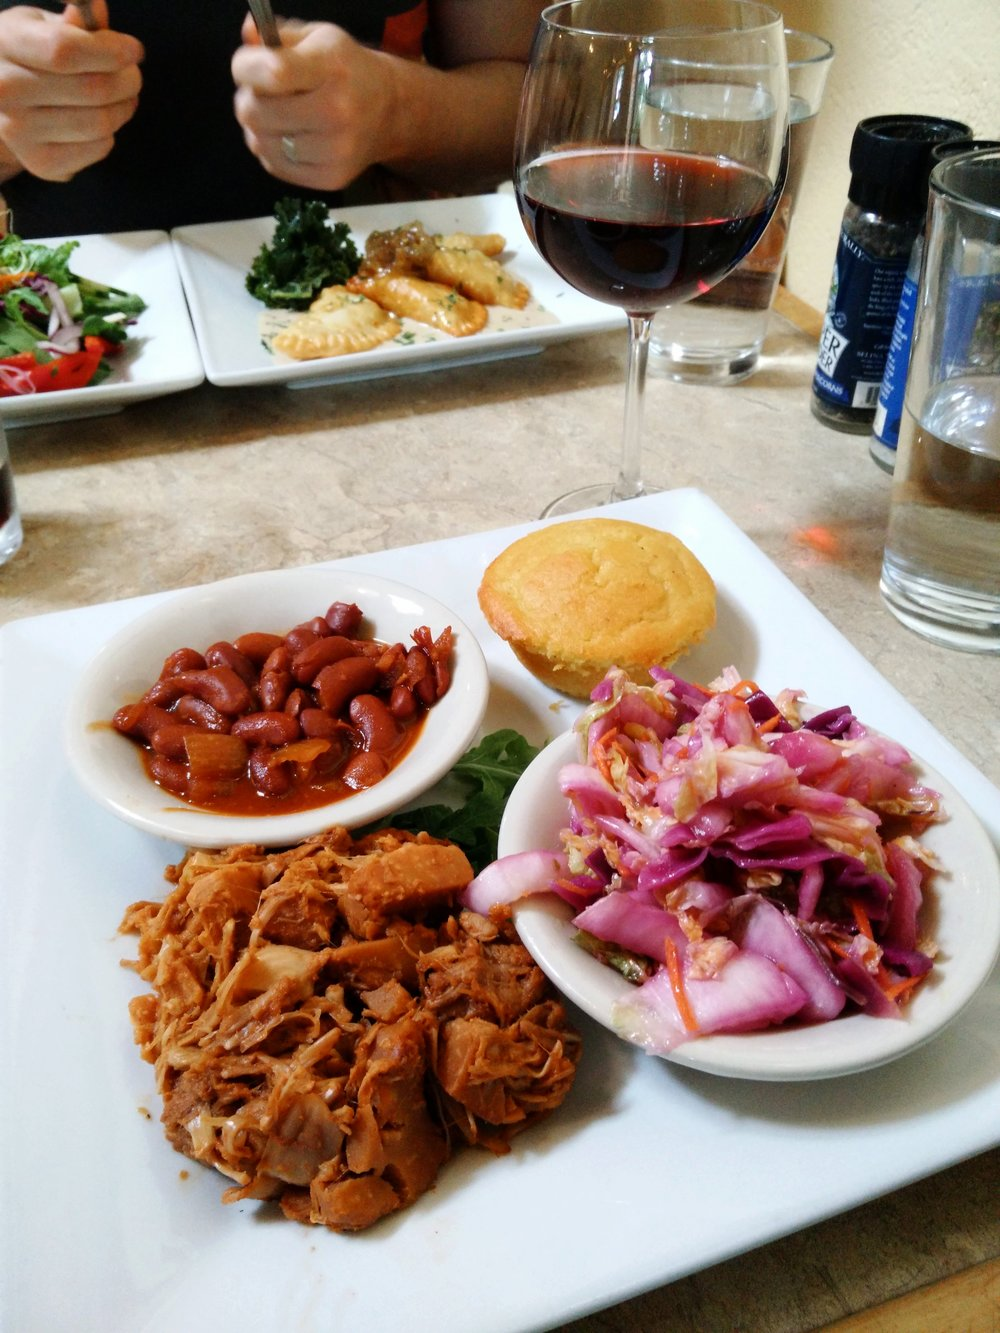 The Laughing Seed's barbecue platter: vegan chipotle beans, cornbread muffin, tangy Southern slaw, and BBQ jackfruit